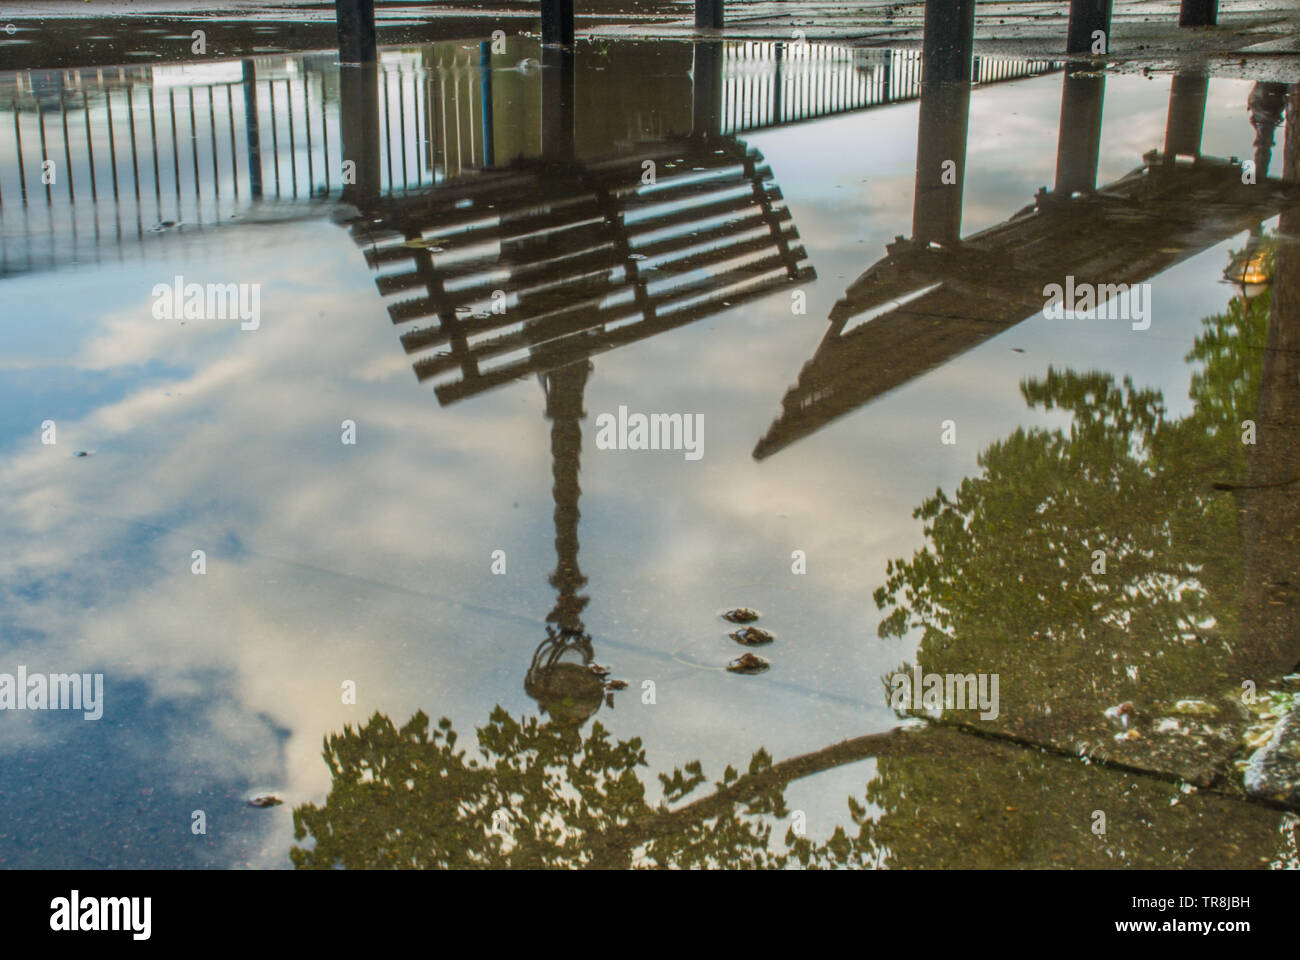 Reflections in the water of the path banks of the River Thames after rain. Suitable for background images. - Stock Image